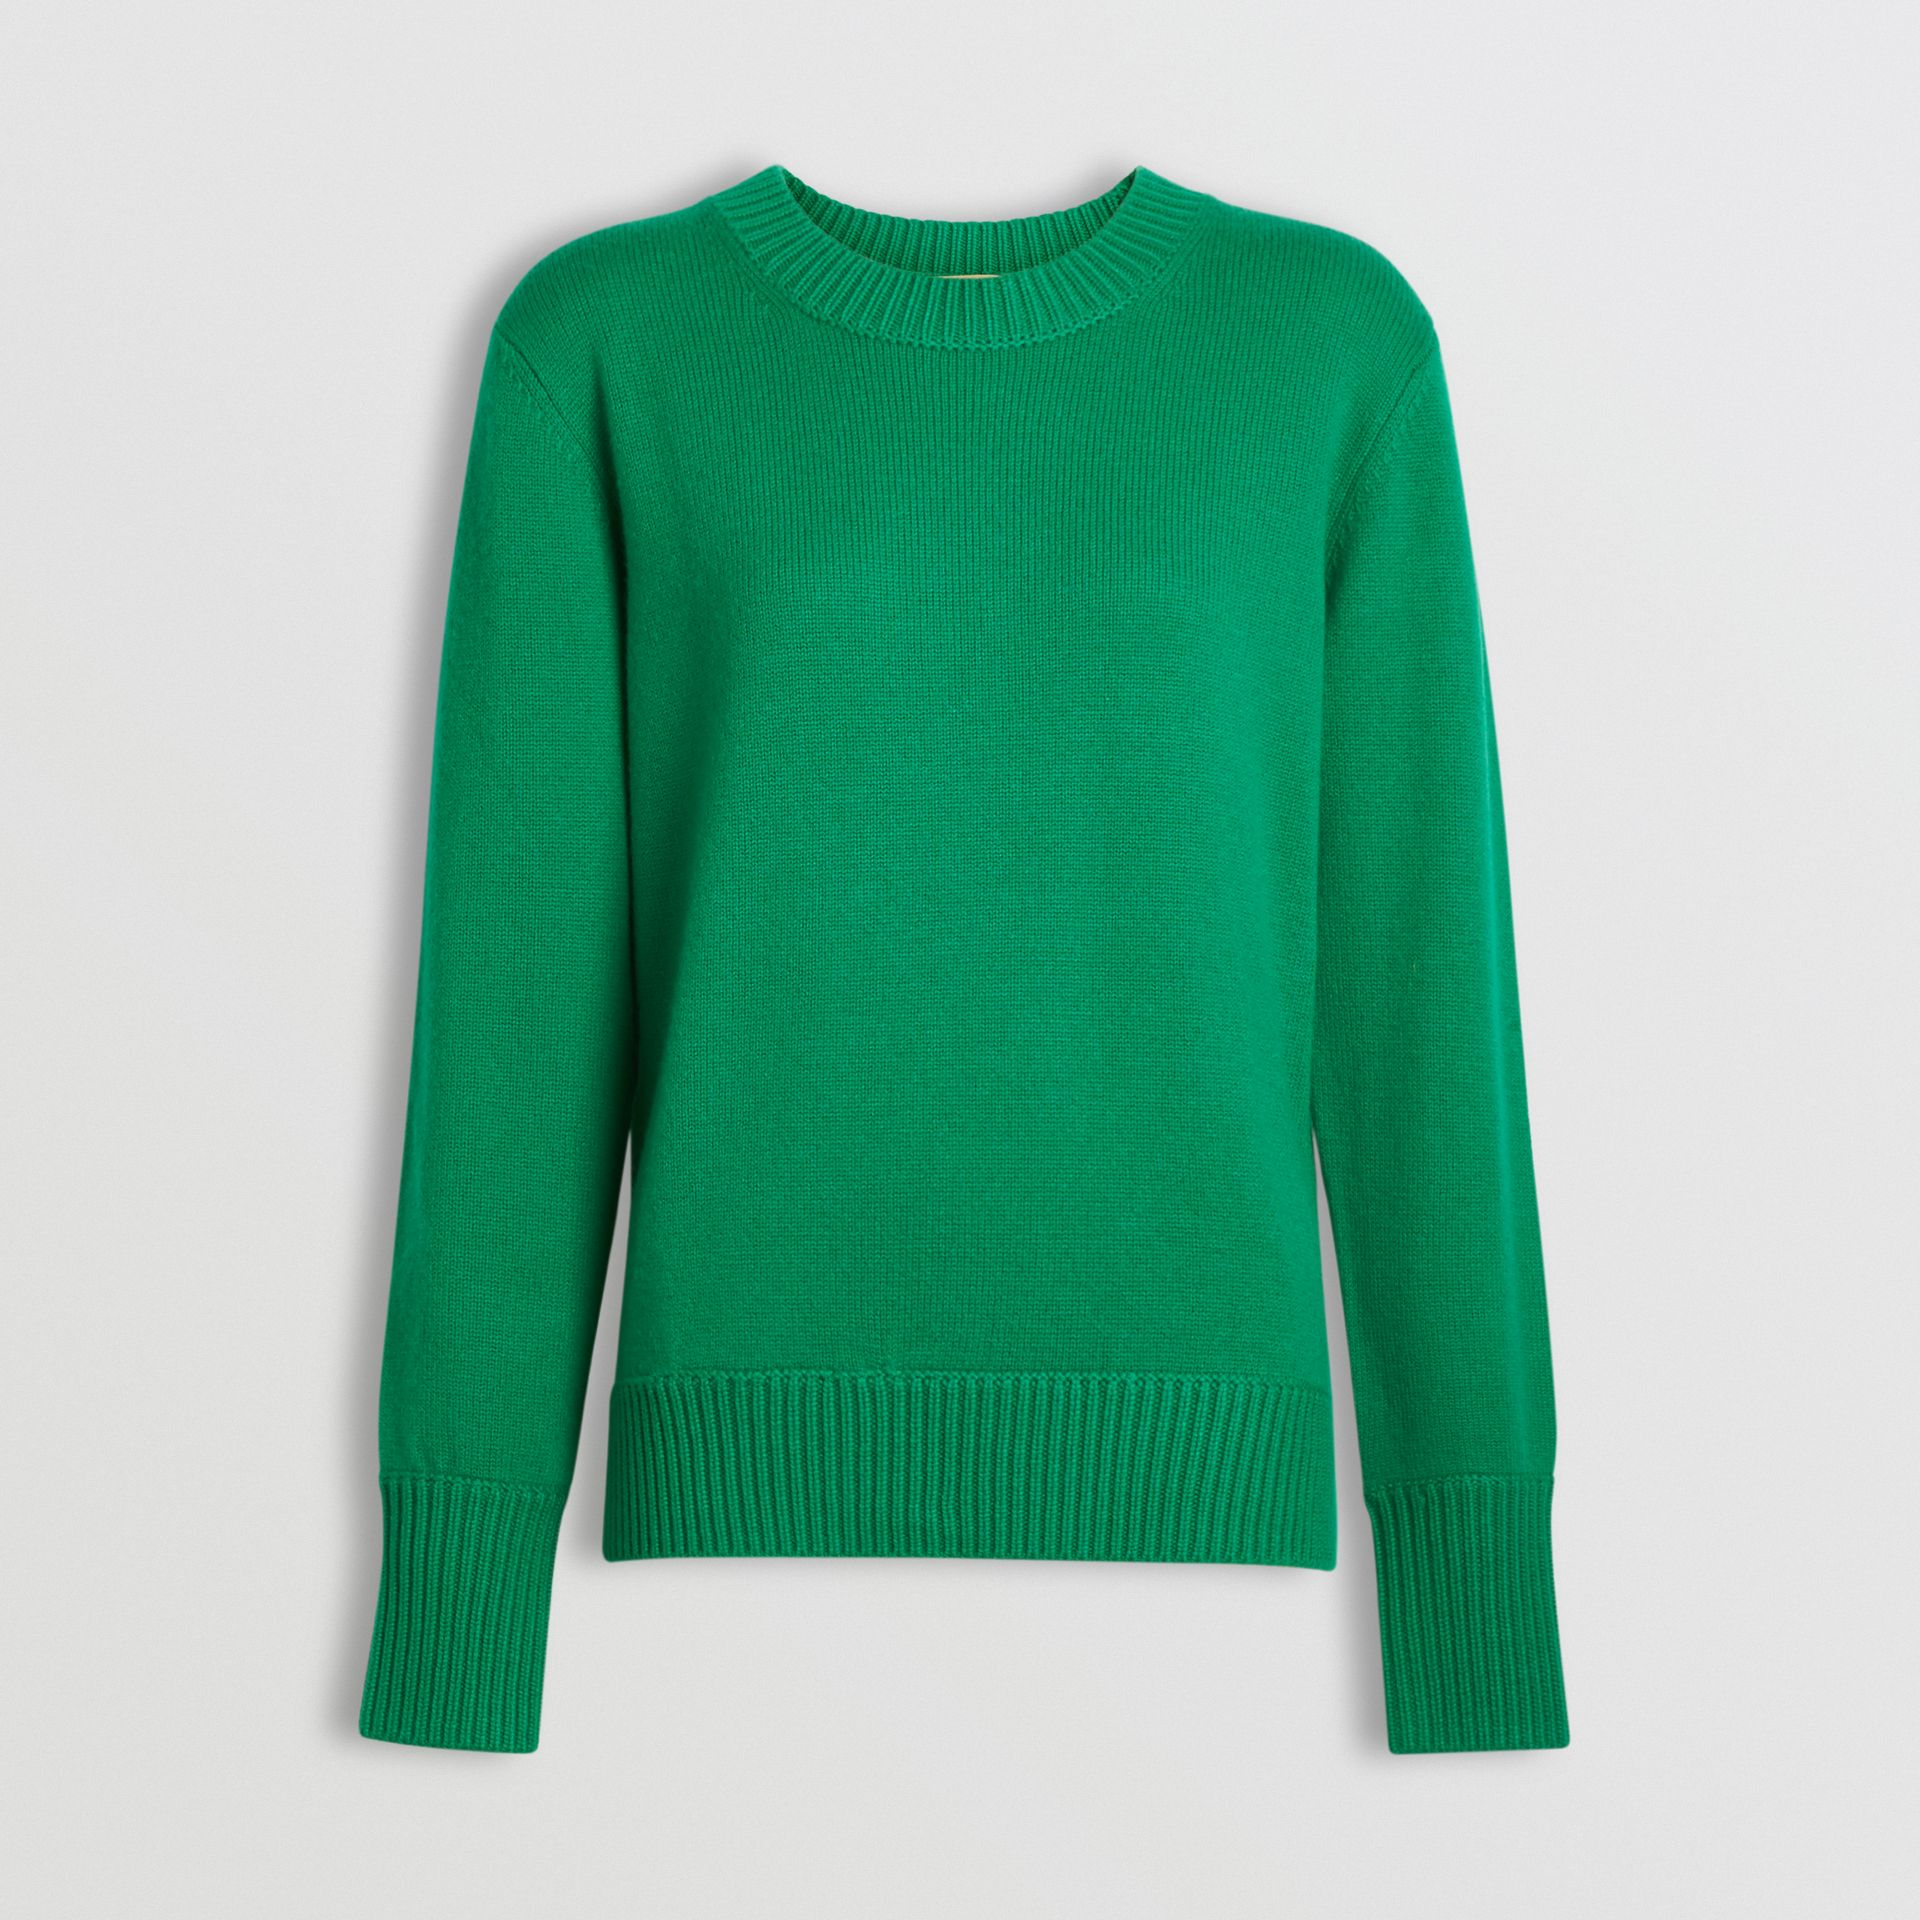 Archive Logo Appliqué Cashmere Sweater in Vibrant Green - Women | Burberry Canada - gallery image 3